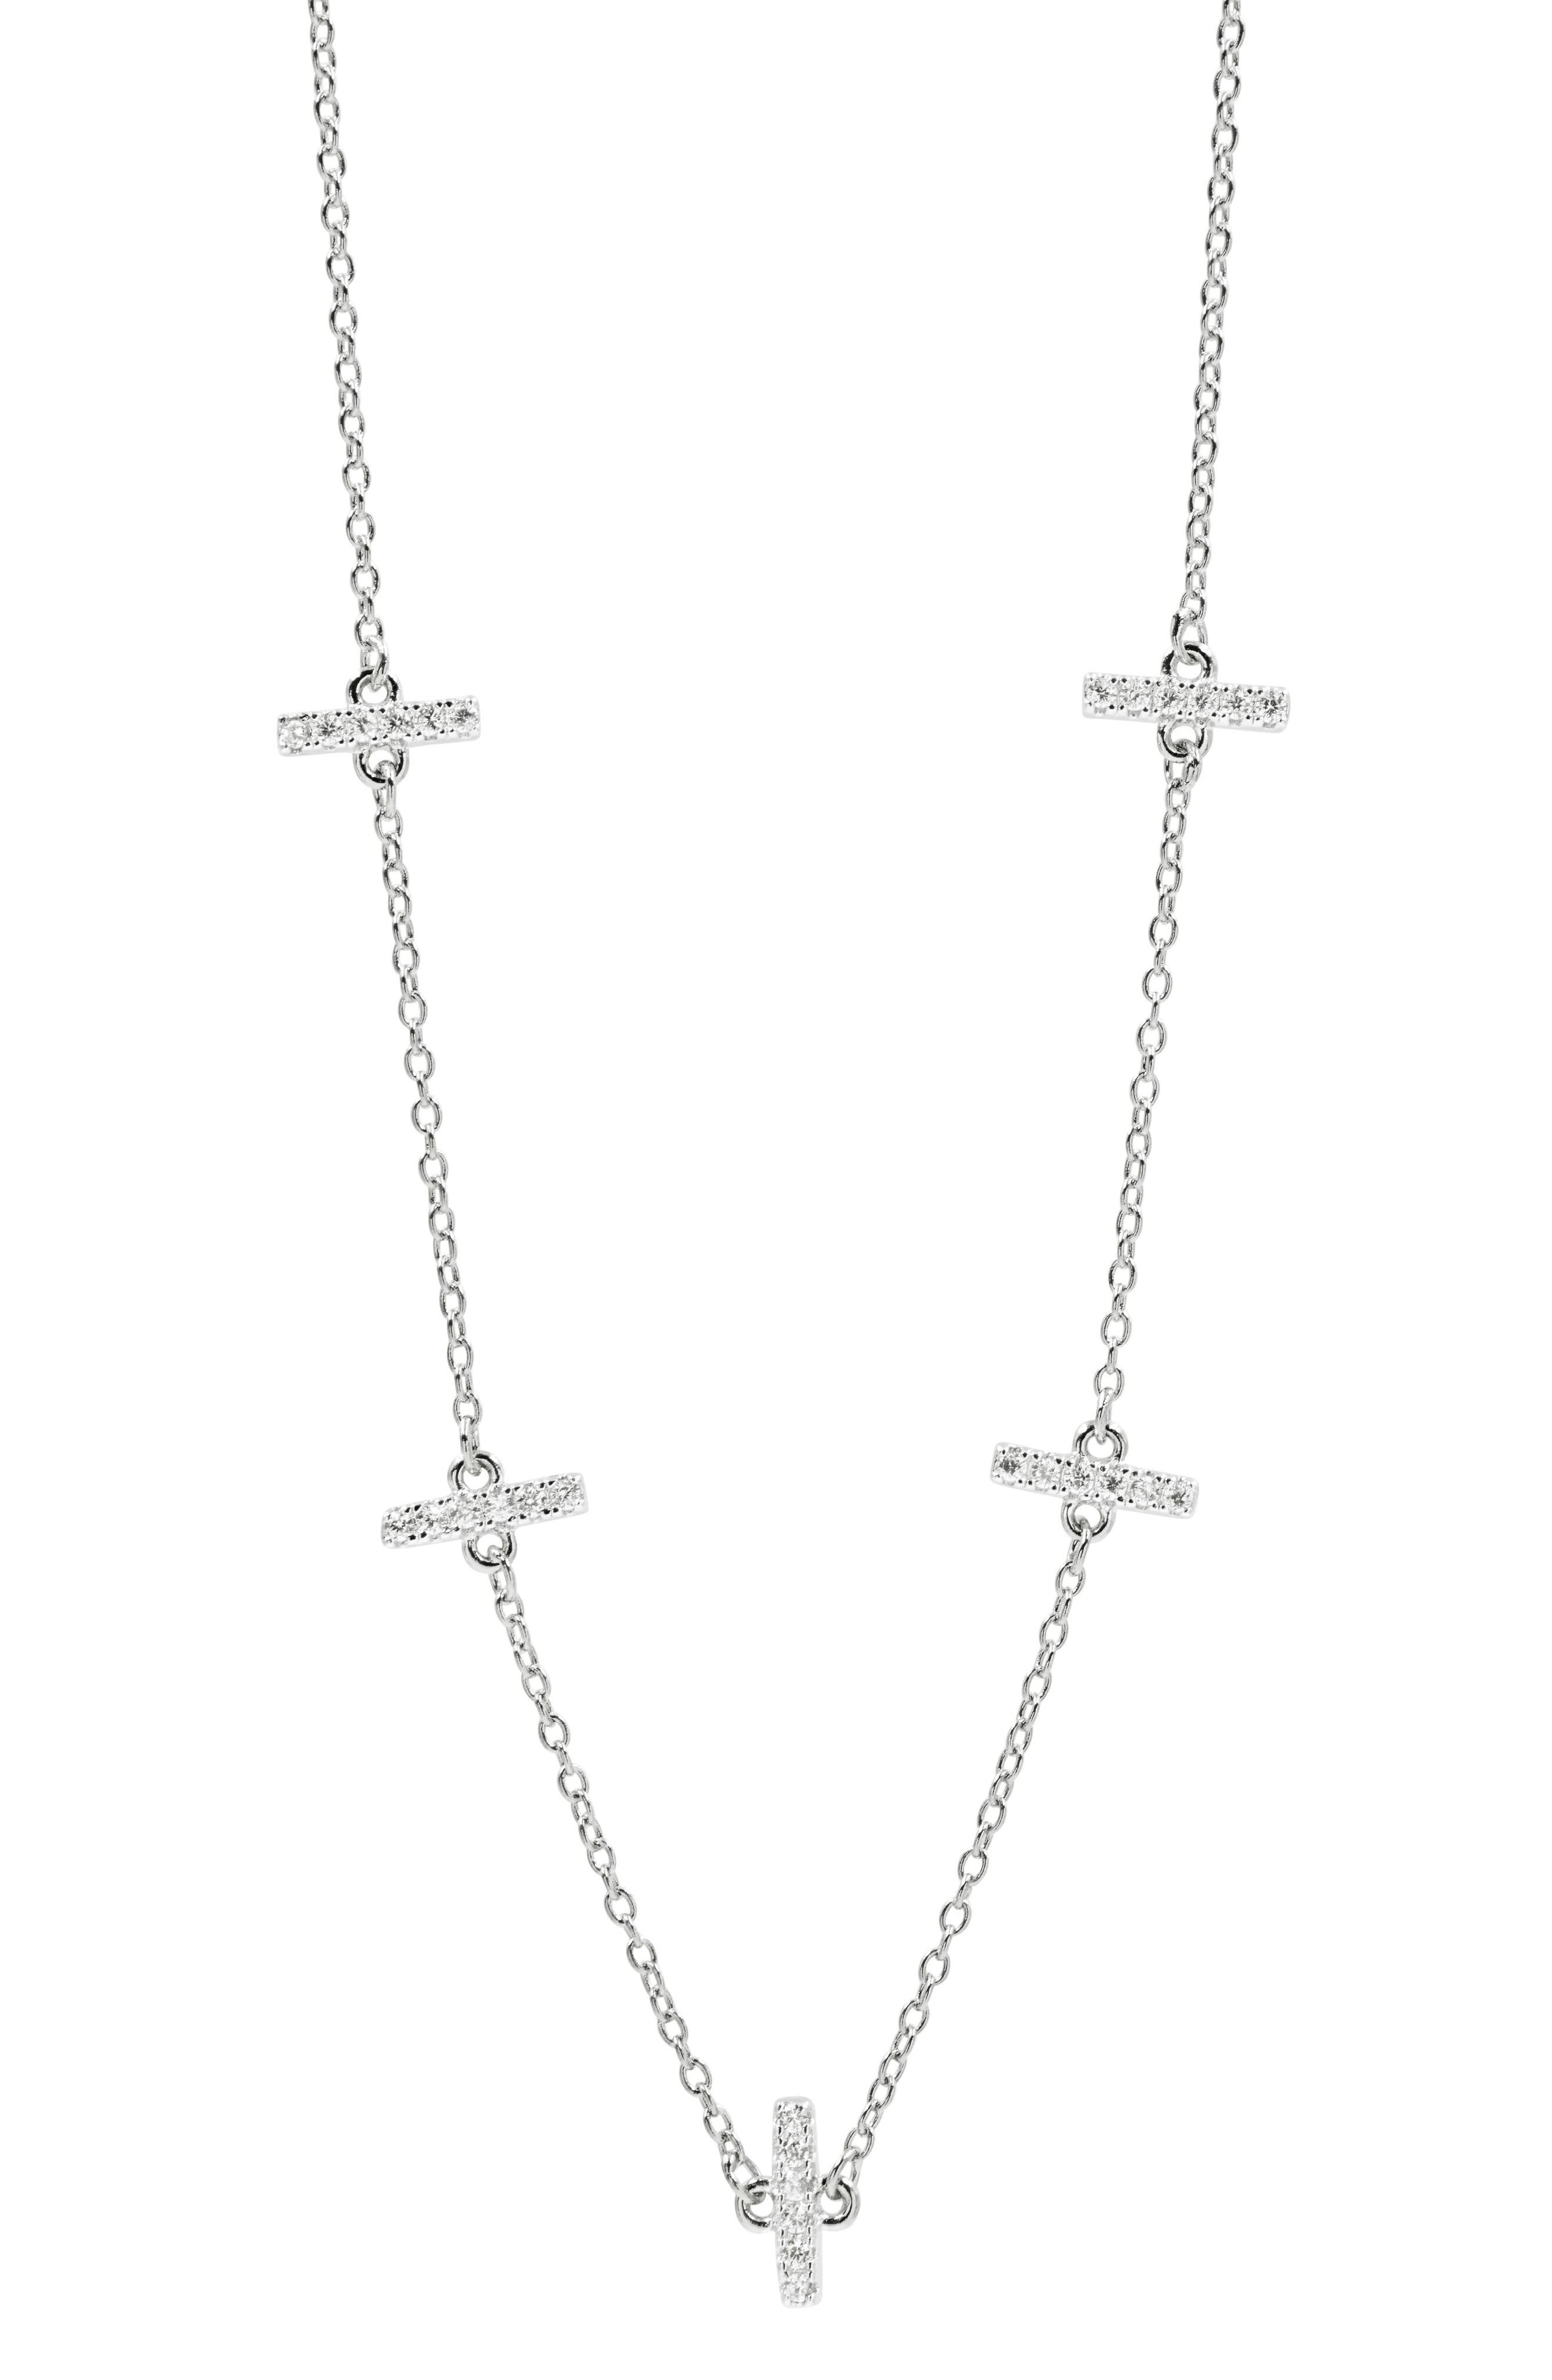 Radiance Crystal Station Necklace,                         Main,                         color, SILVER